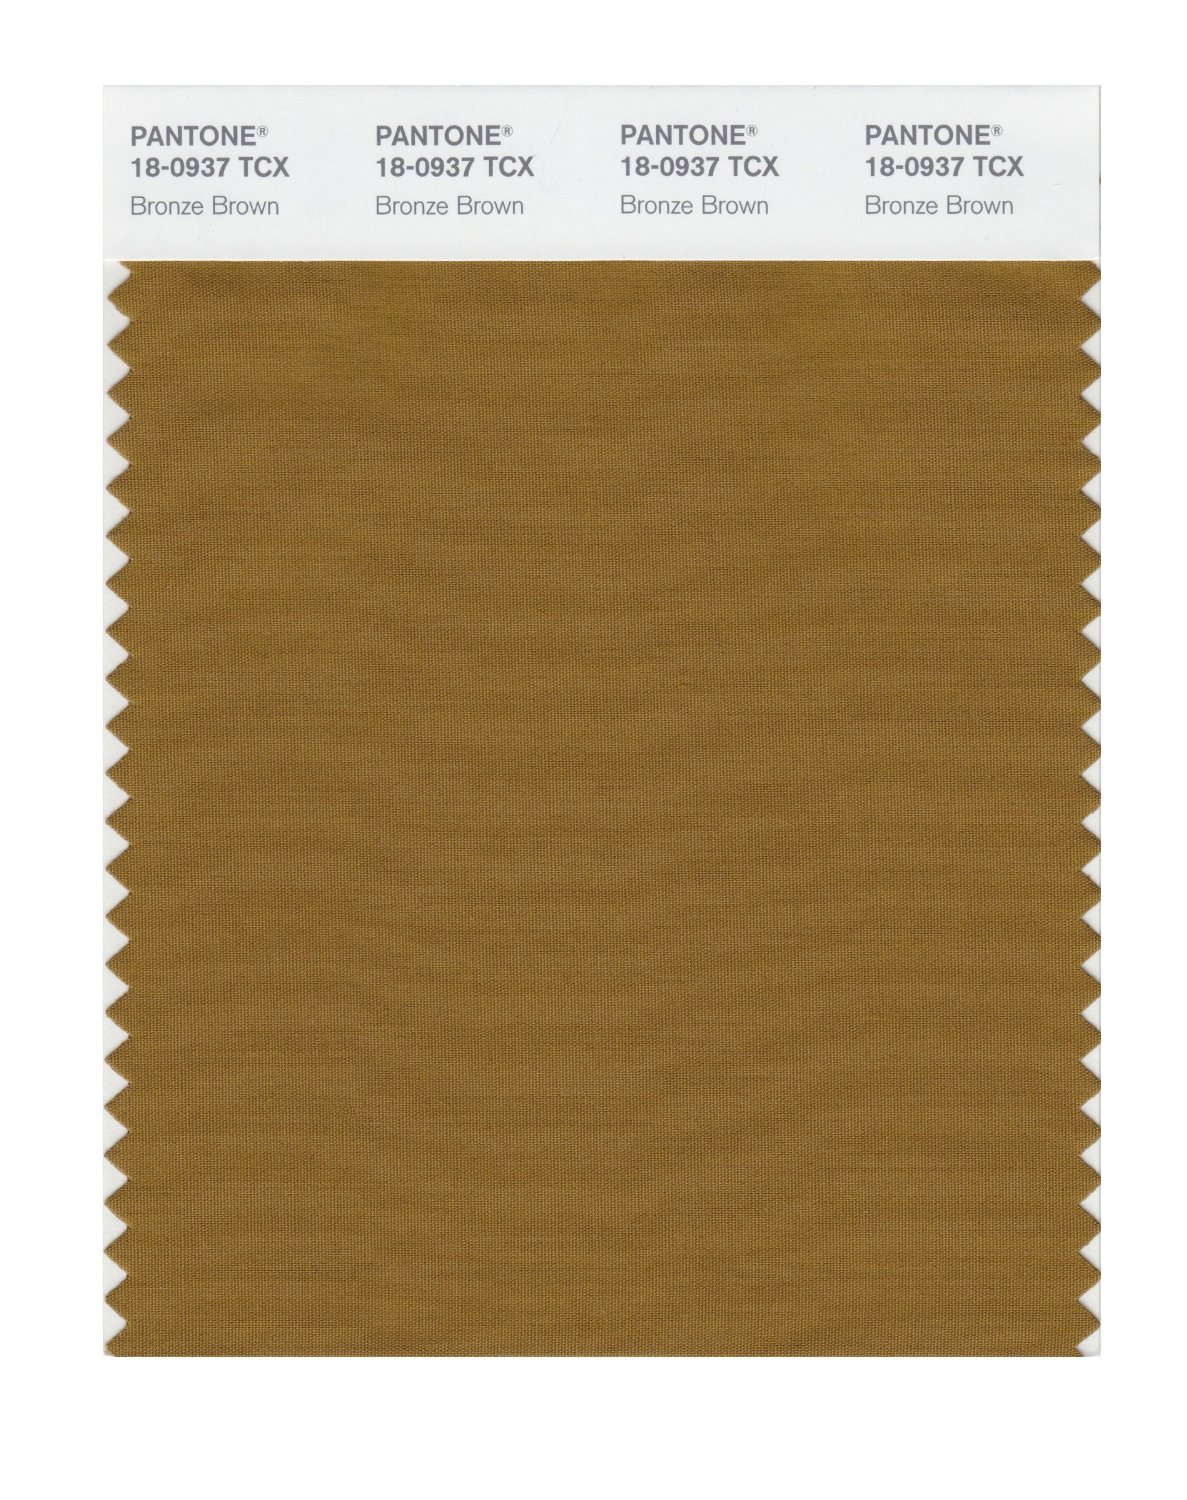 Pantone Smart Swatch 18-0937 Bronze Brown